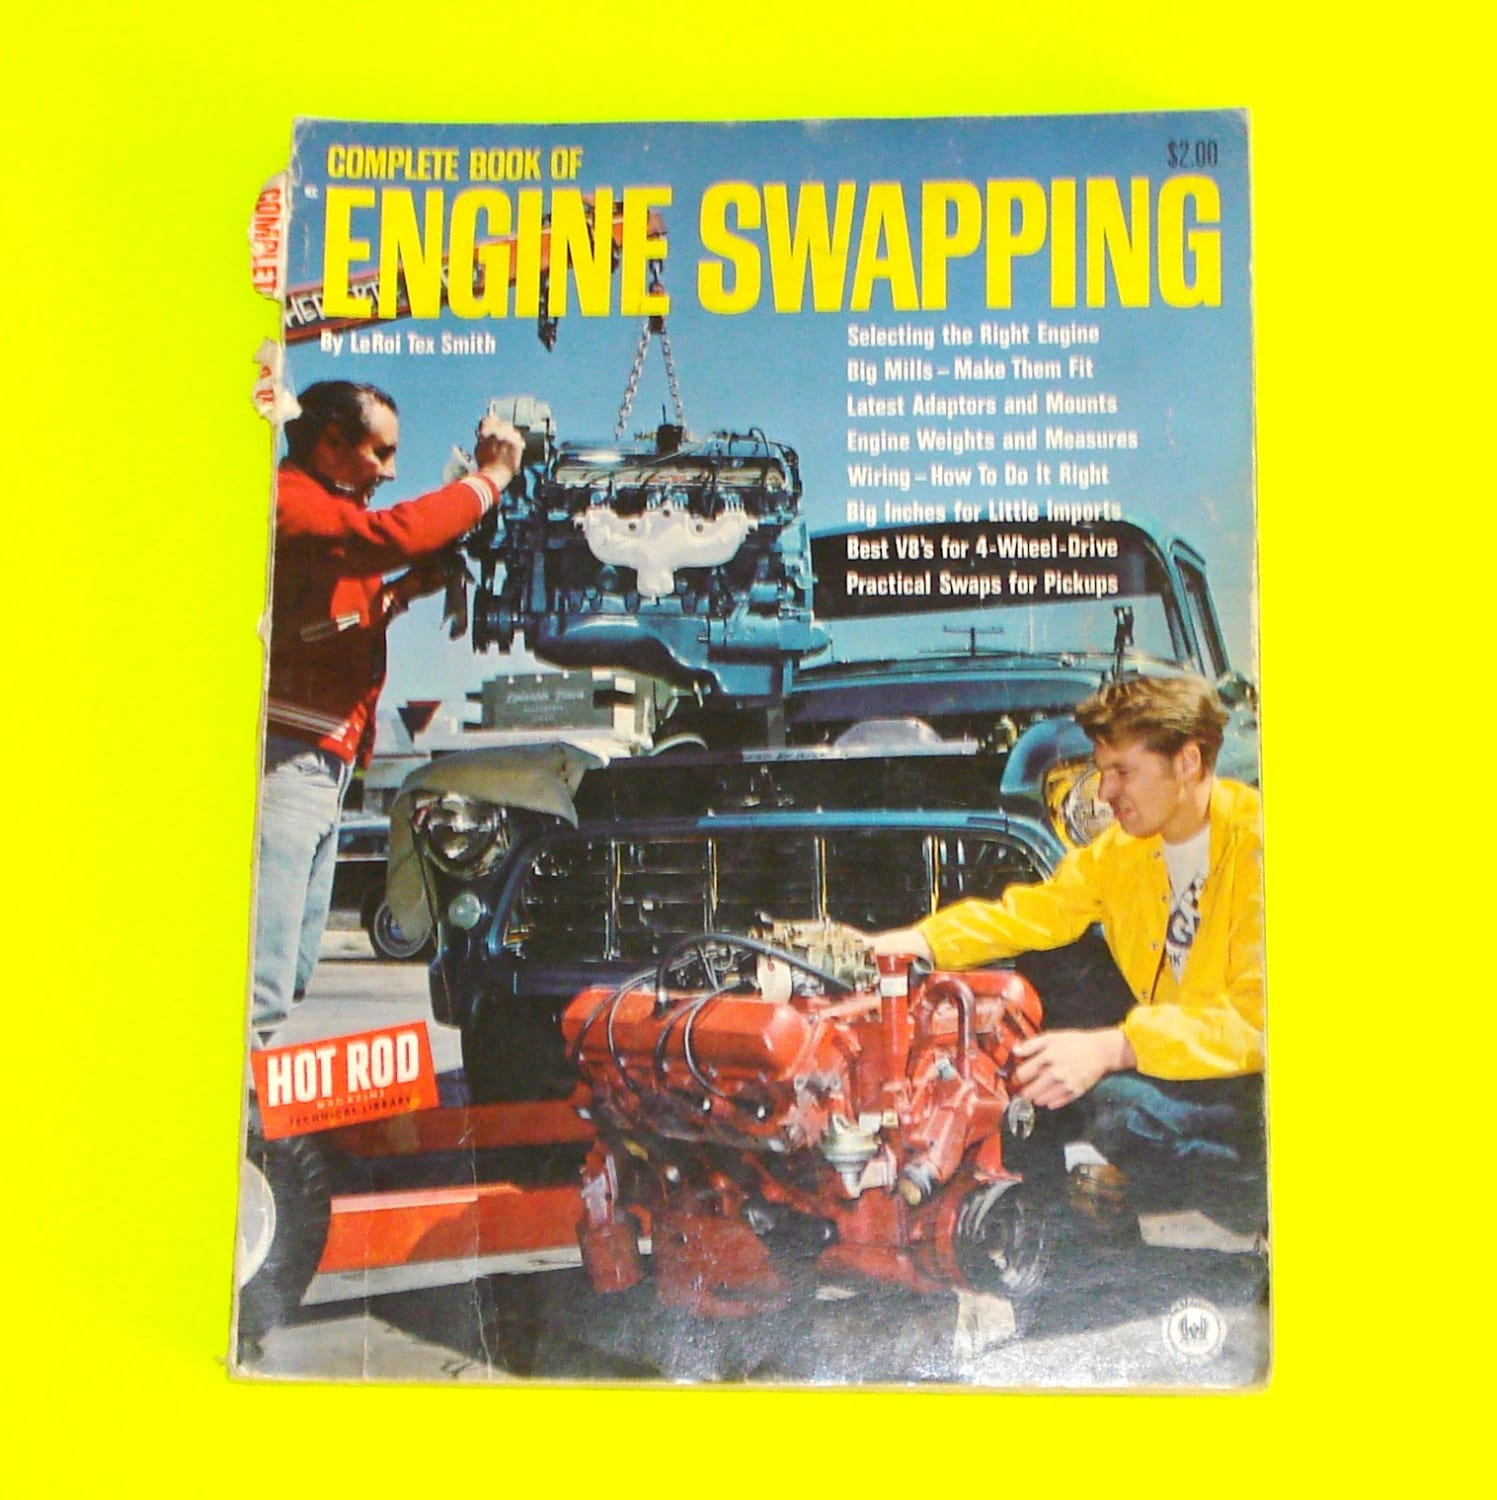 Vintage 1968 Complete Book of Engine Swapping No  1 by Leroi Tex Smith -  Original - Rare!